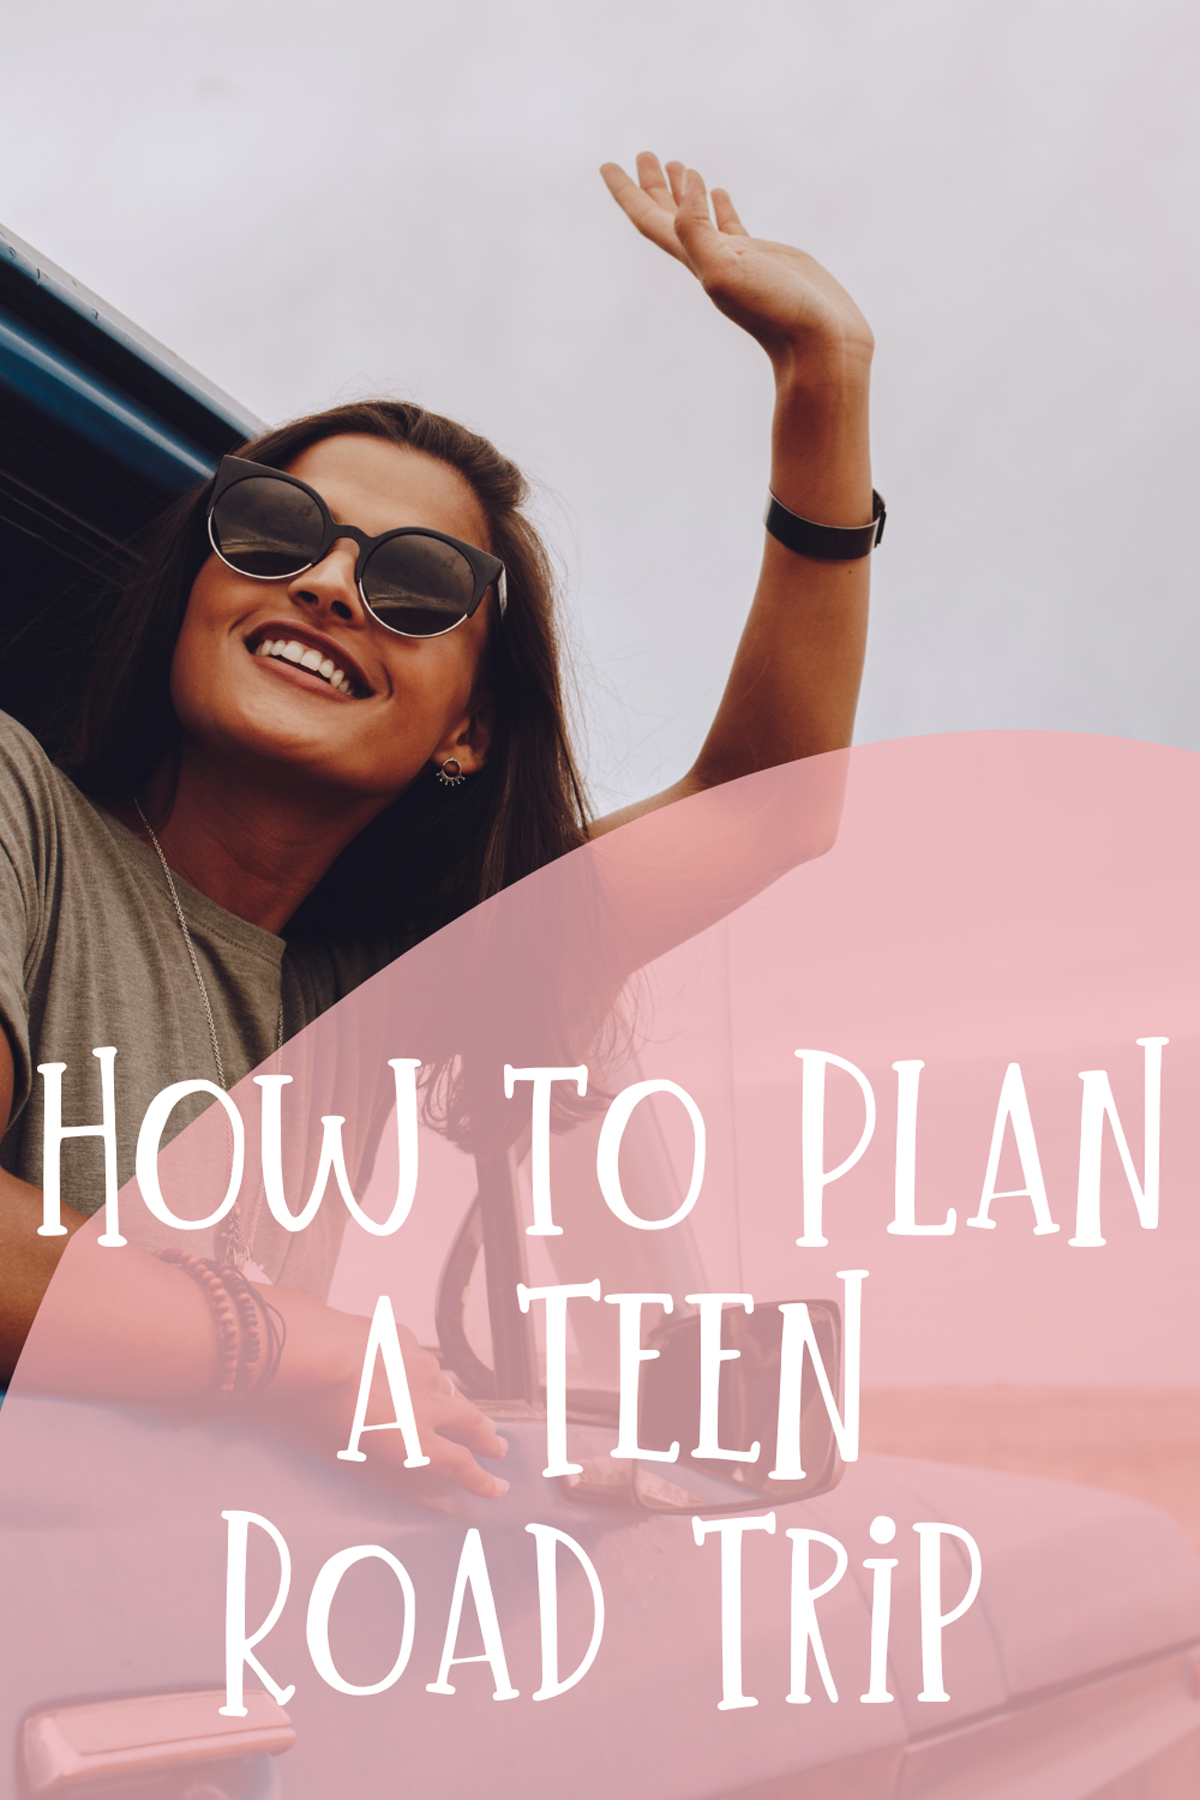 How to Plan a Teen Road Trip